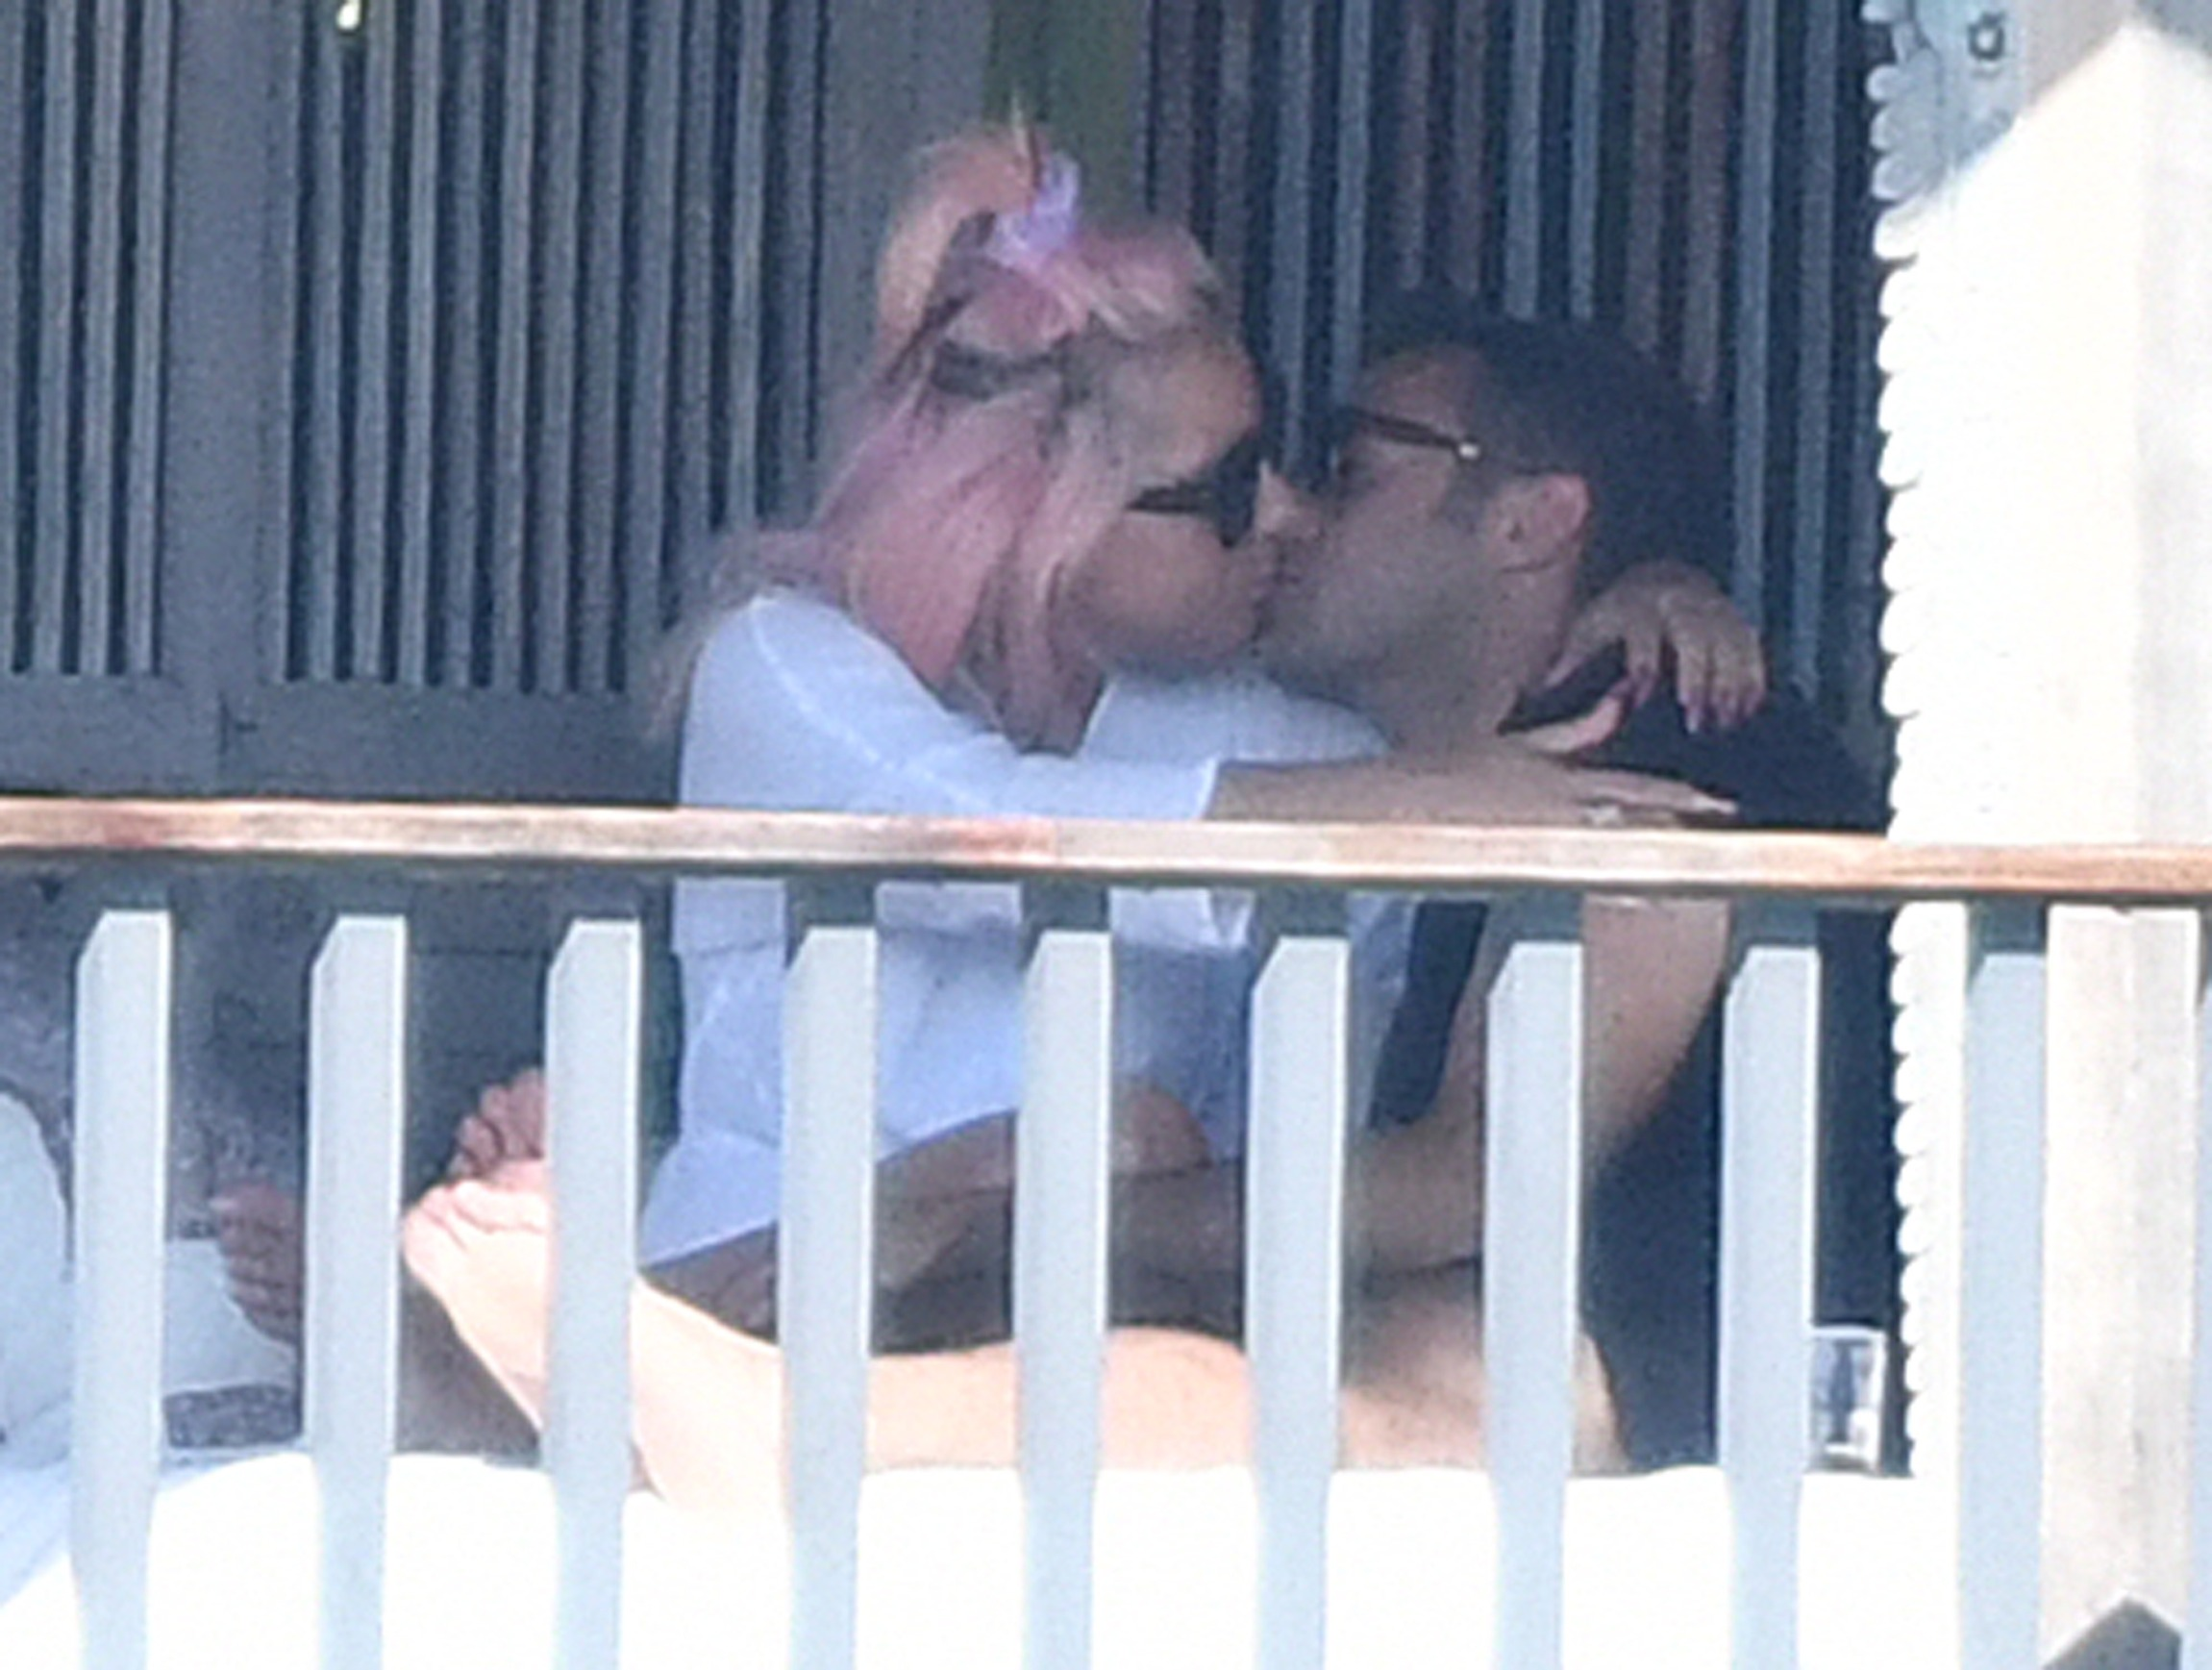 *PREMIUM EXCLUSIVE NO WEB UNTIL 2130 EST 2ND FEB* Lady Gaga seen kissing a mystery man as she relaxes in Miami ahead of her pre Super Bowl concert on Saturday. Gaga looked sensational as she chilled out wearing a black thong bikini whilst cuddling up to her new man. It is not known if her hunky companion is the same man the 33-year-old beauty was spotted sharing a midnight kiss with in Las Vegas over the New Year holiday. Gaga ended her engagement from talent agent, Christian Carino, 51, in February 2019. The pair began dating in 2017 and got engaged in October 2018. 30 Jan 2020, Image: 496030374, License: Rights-managed, Restrictions: World Rights, Model Release: no, Credit line: MEGA / The Mega Agency / Profimedia